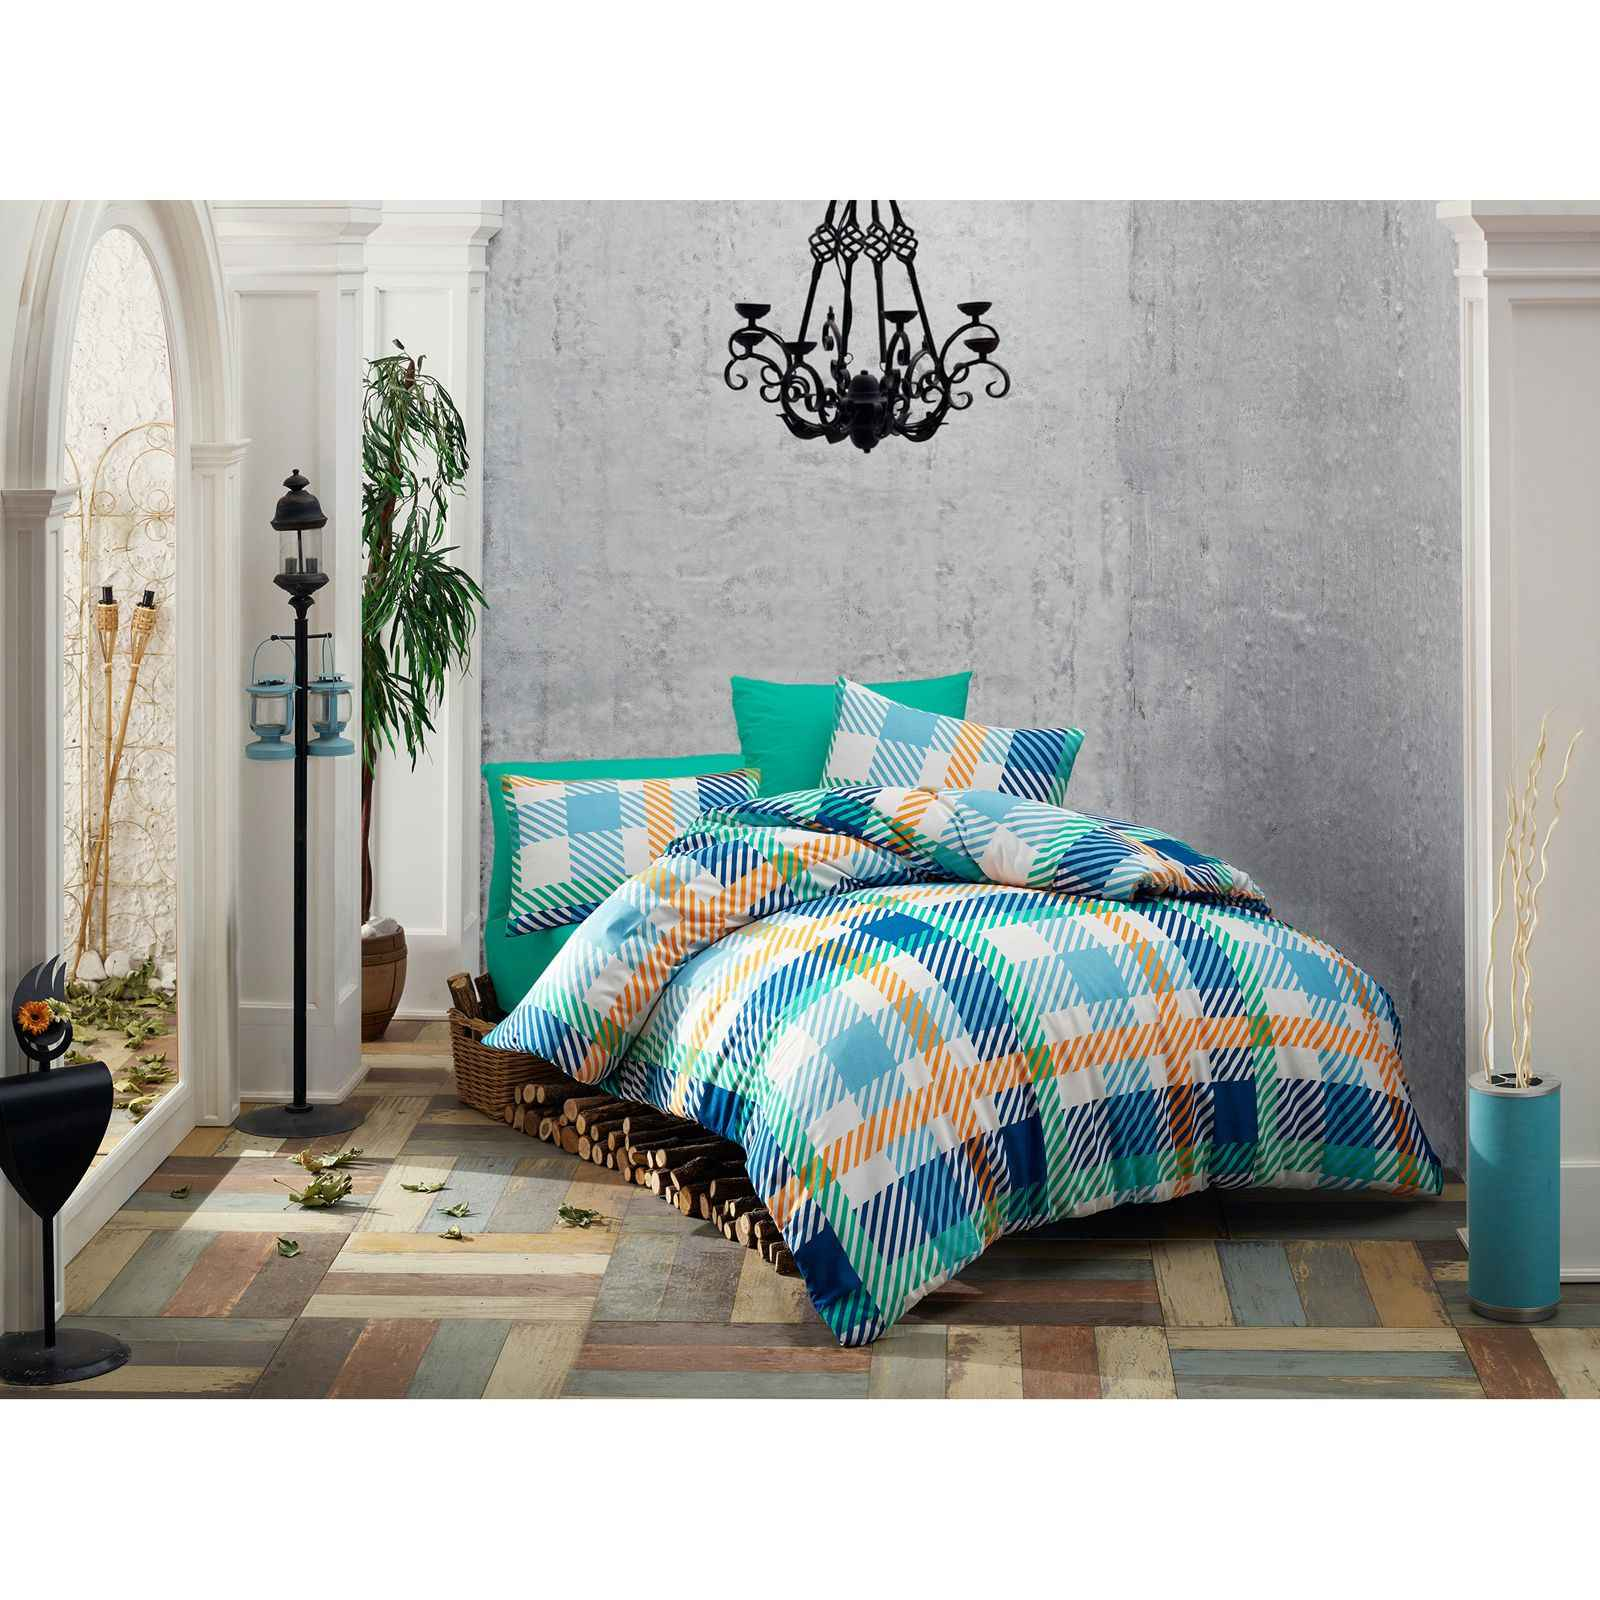 en vogue parure de lit turquoise brandalley. Black Bedroom Furniture Sets. Home Design Ideas